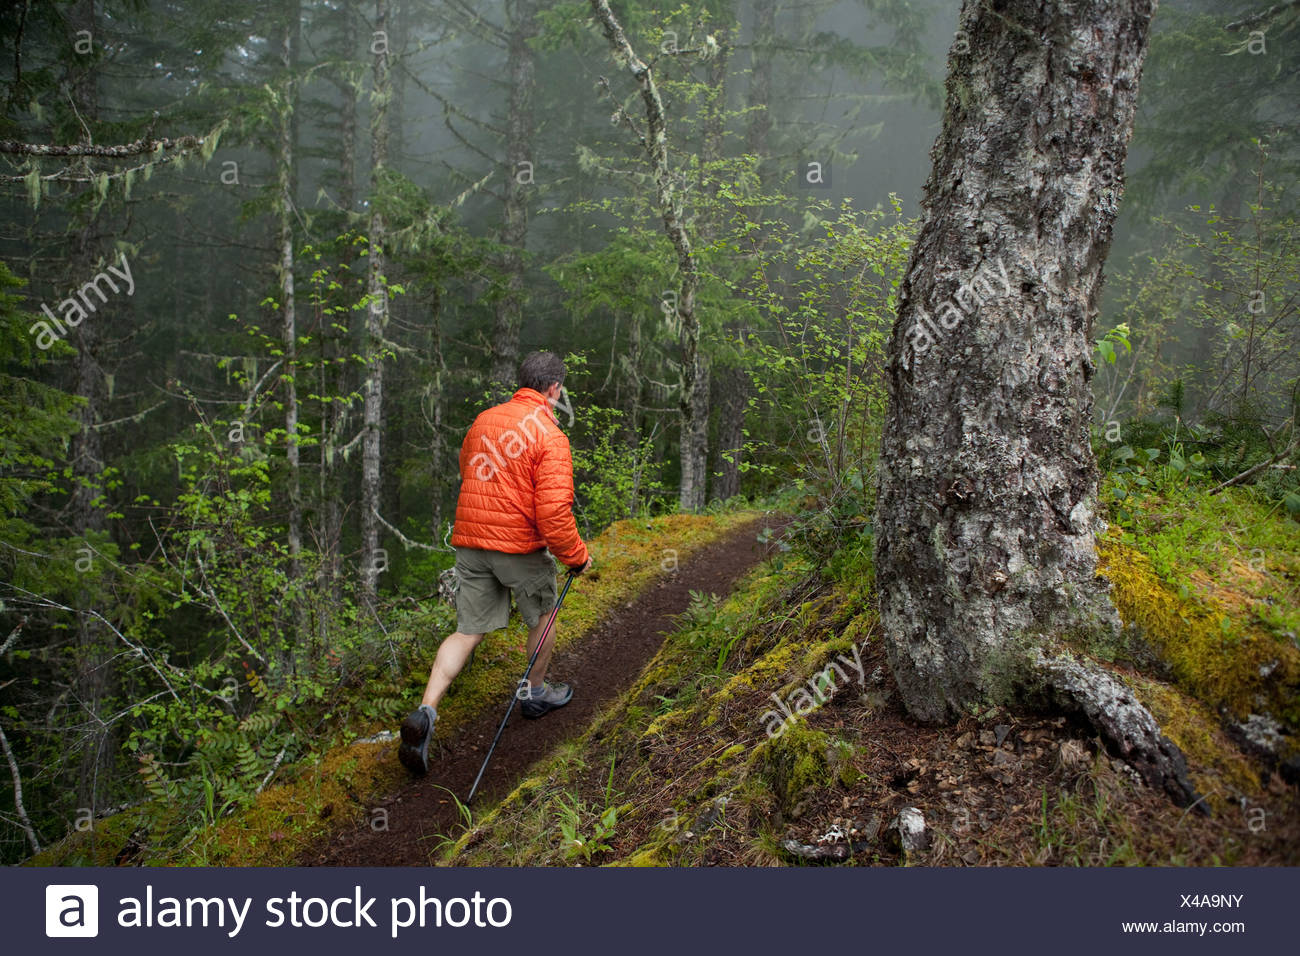 A man in an orange jacket hikes trough a trail in the foggy and wet forest. - Stock Image